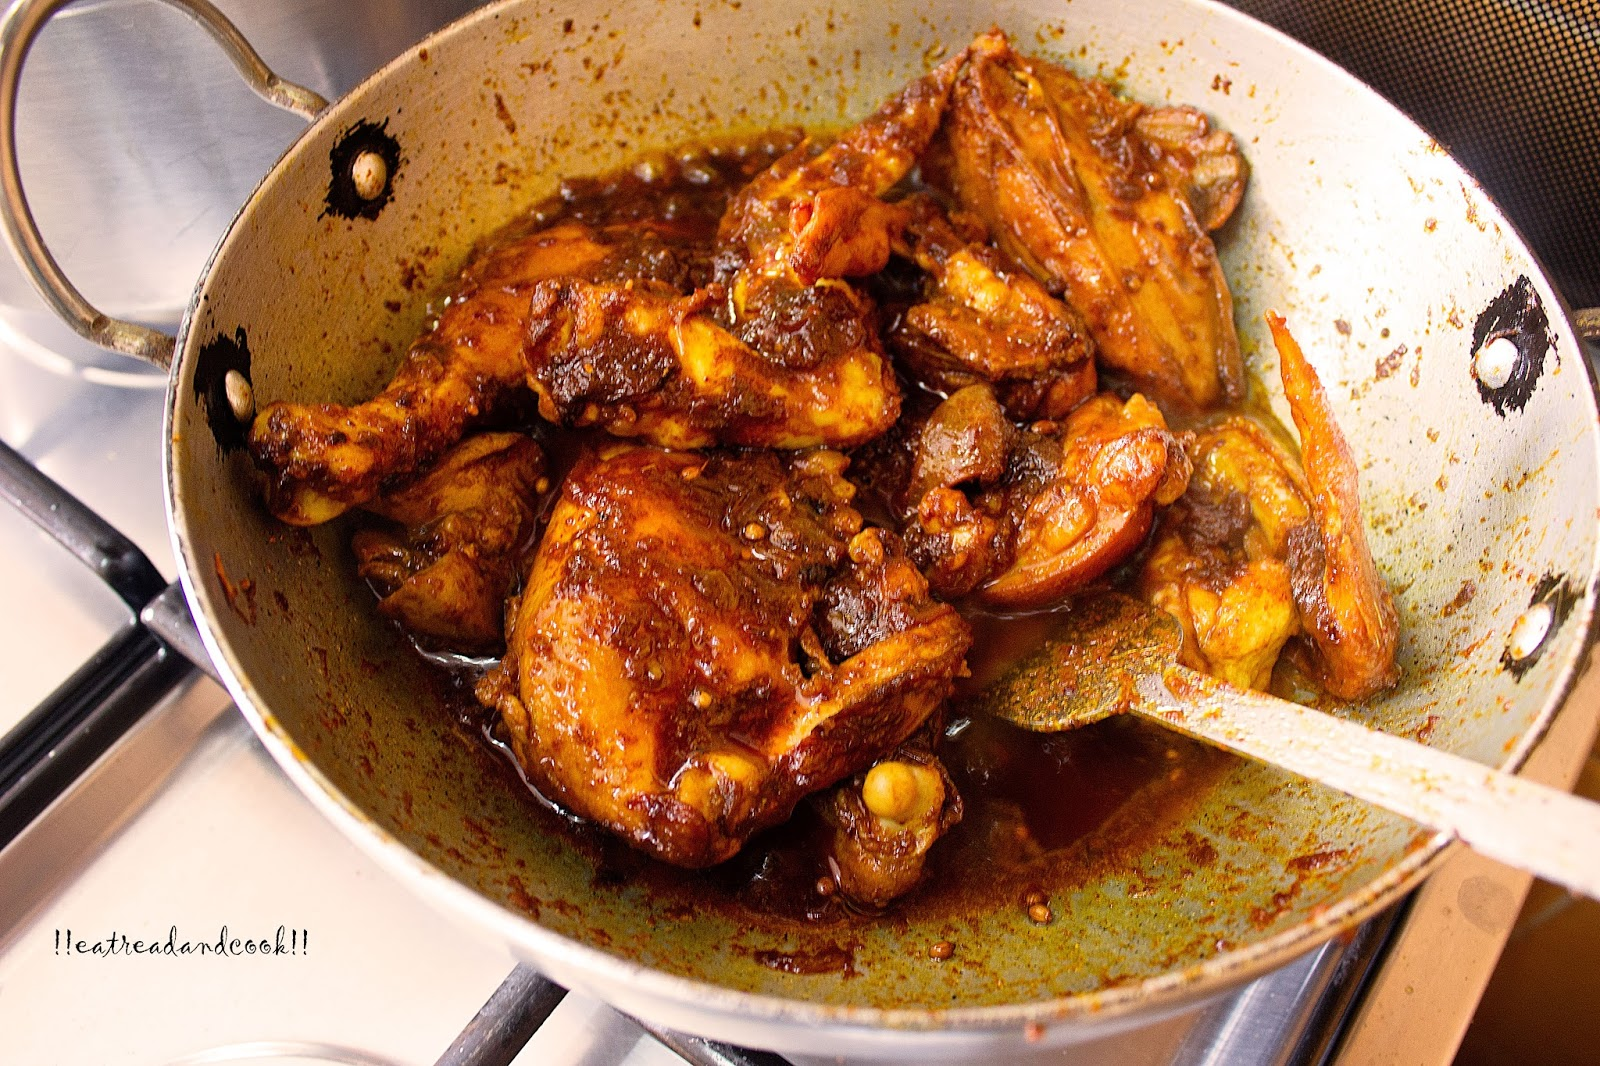 Chittagong chicken curry eat read cook how to make chittagong chicken curry recipe and preparation with step by step pictures ccuart Image collections